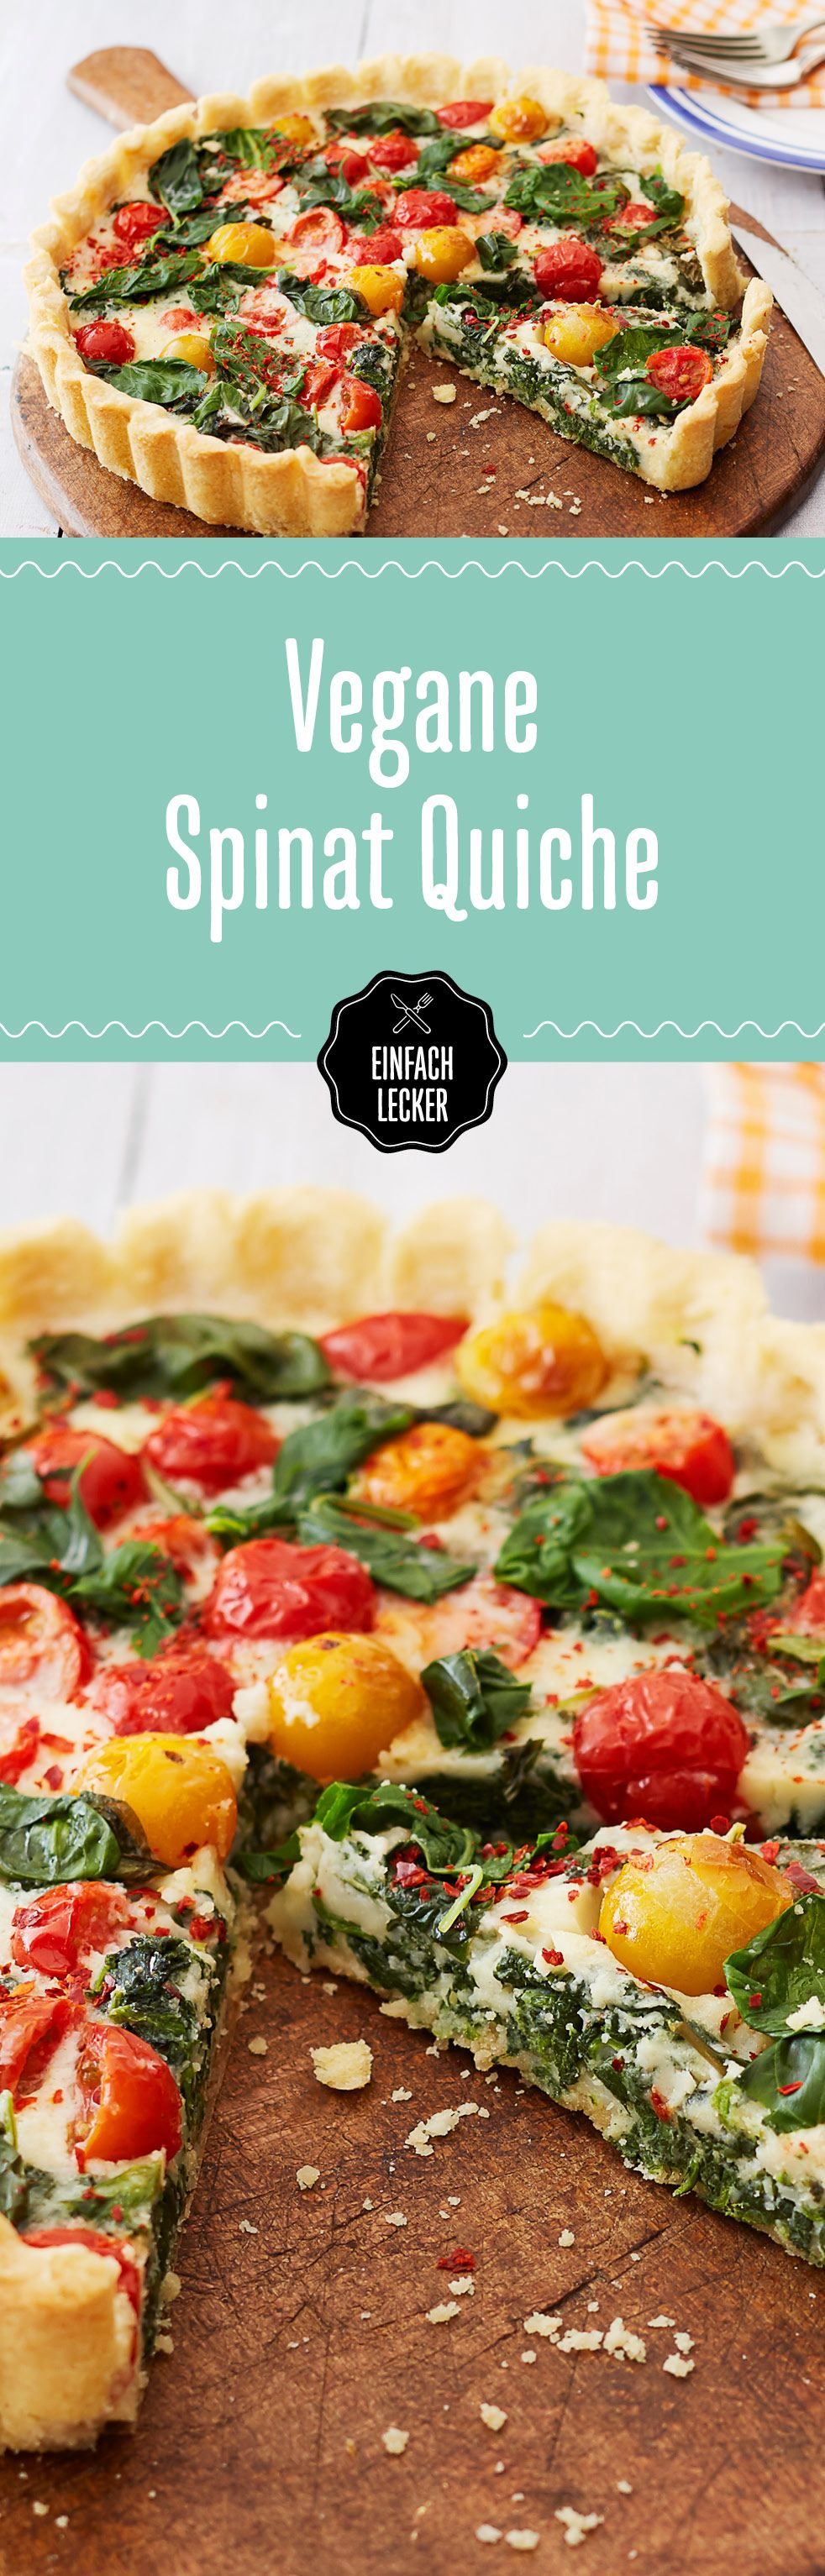 Vegane Spinat Quiche #diet